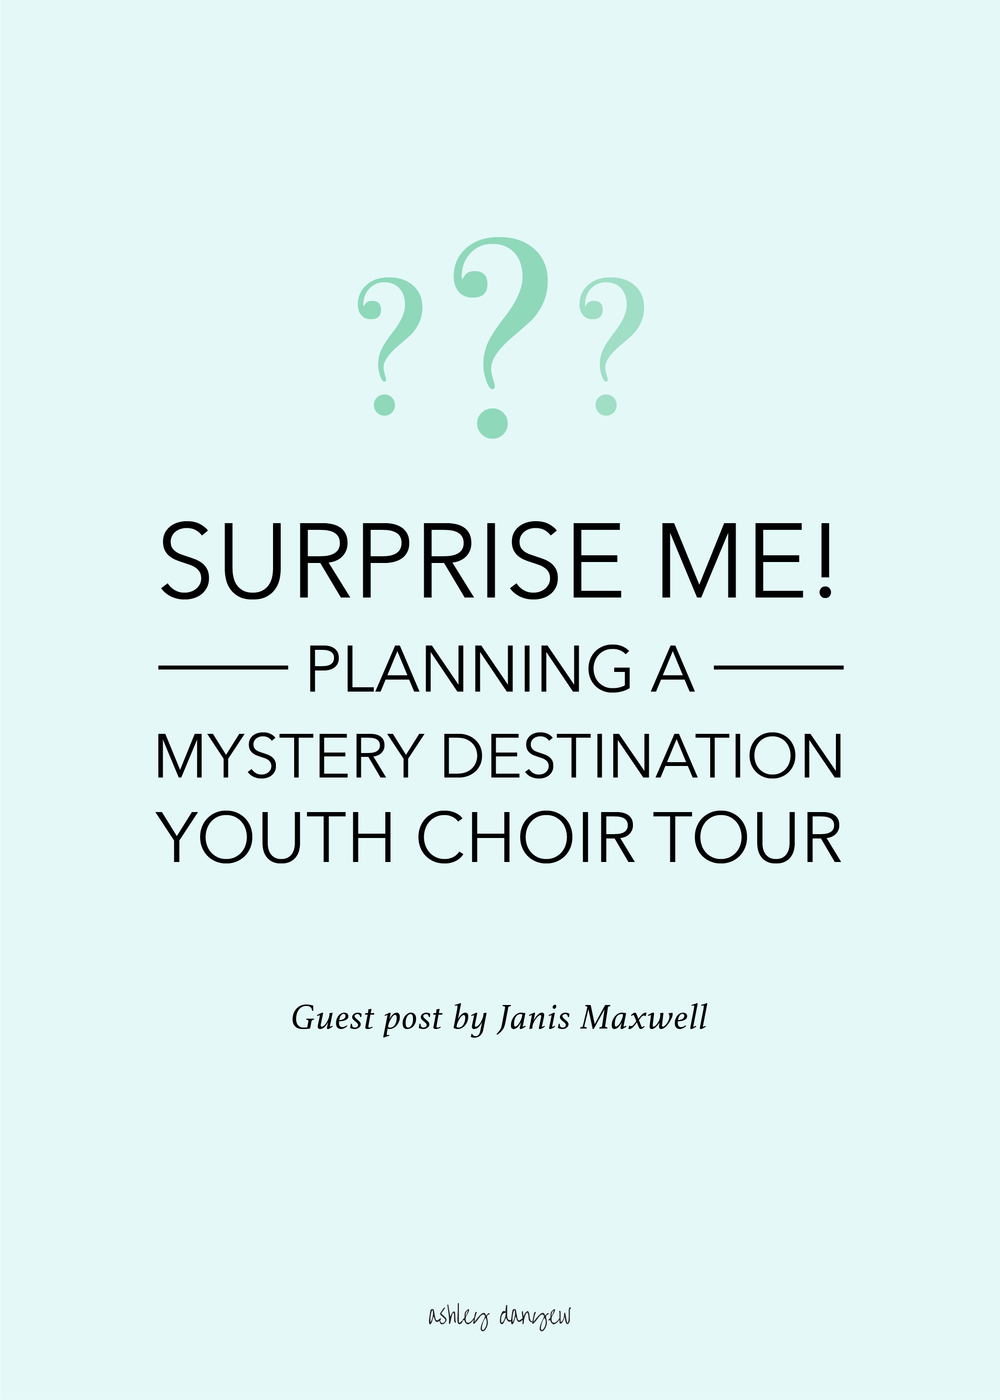 Surprise Me! Planning a Mystery Destination Youth Choir Tour-07.png